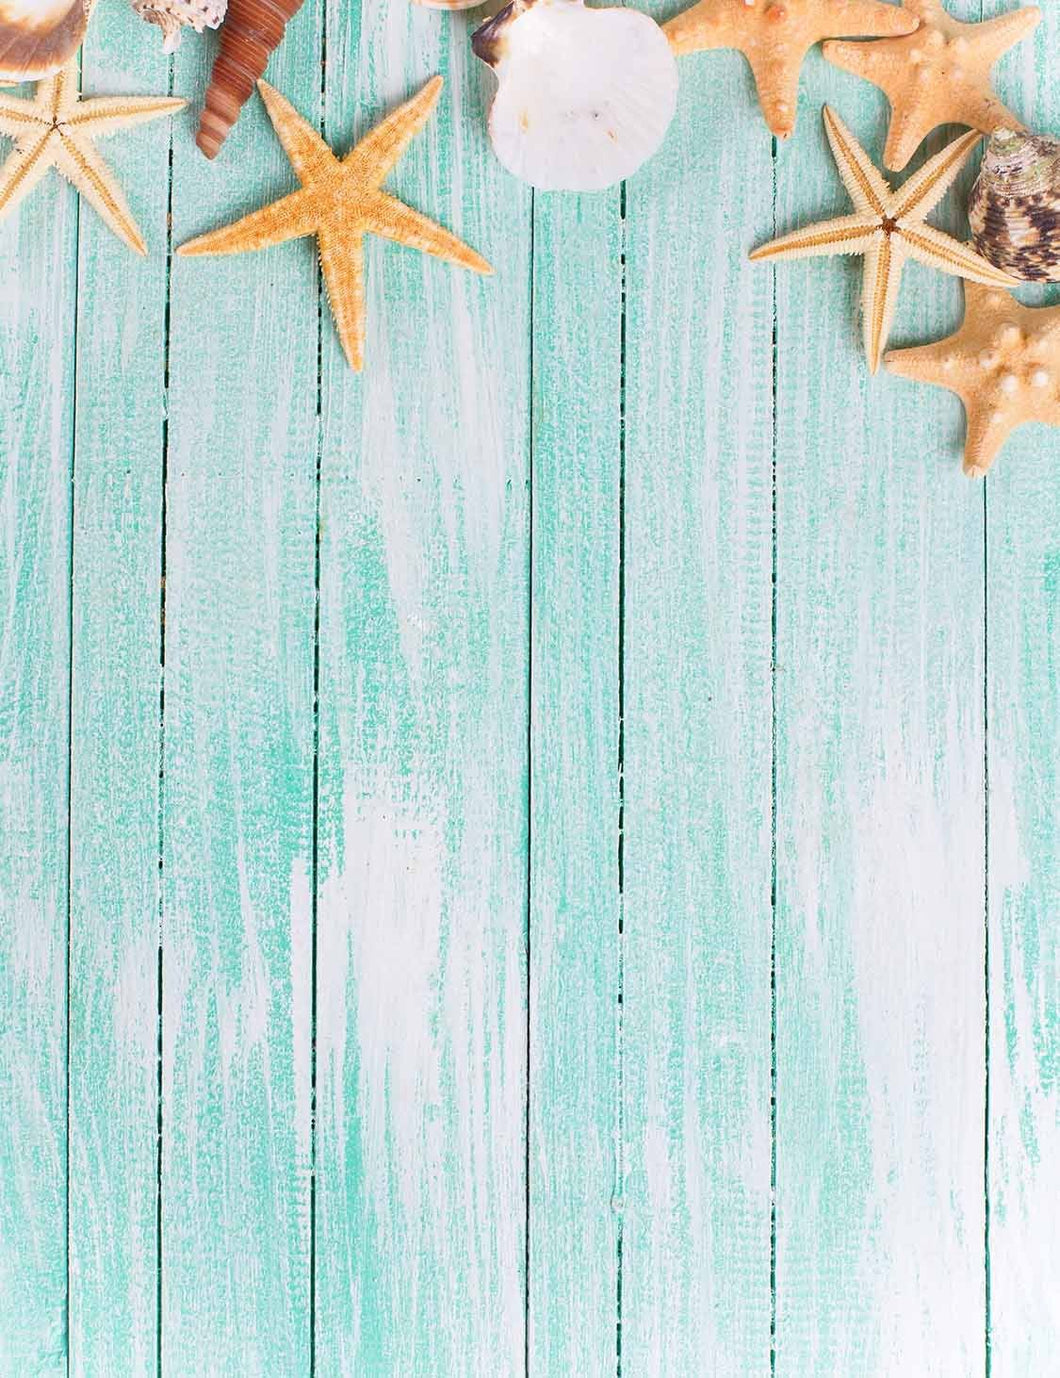 Starfish Conch On Baby Blue Wood Floor Backdrop For Photography